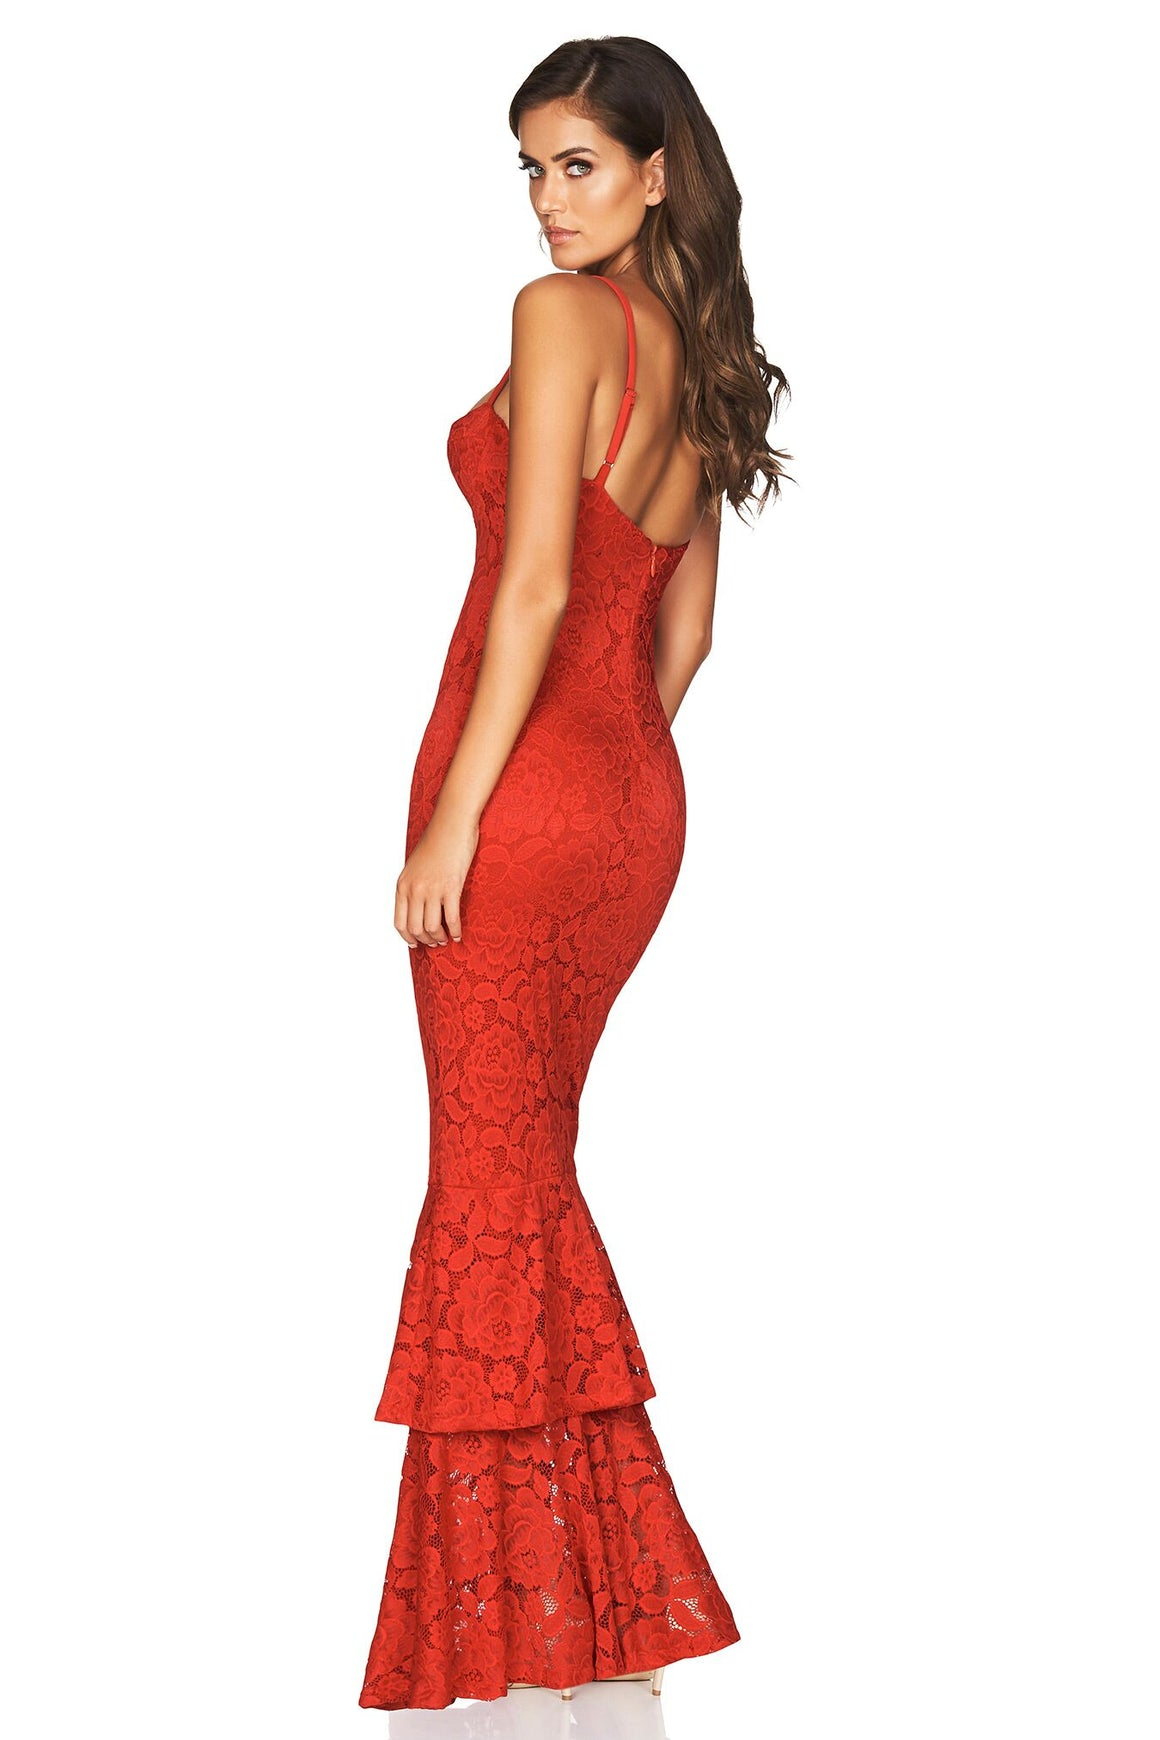 Liana Lace Gown - Red